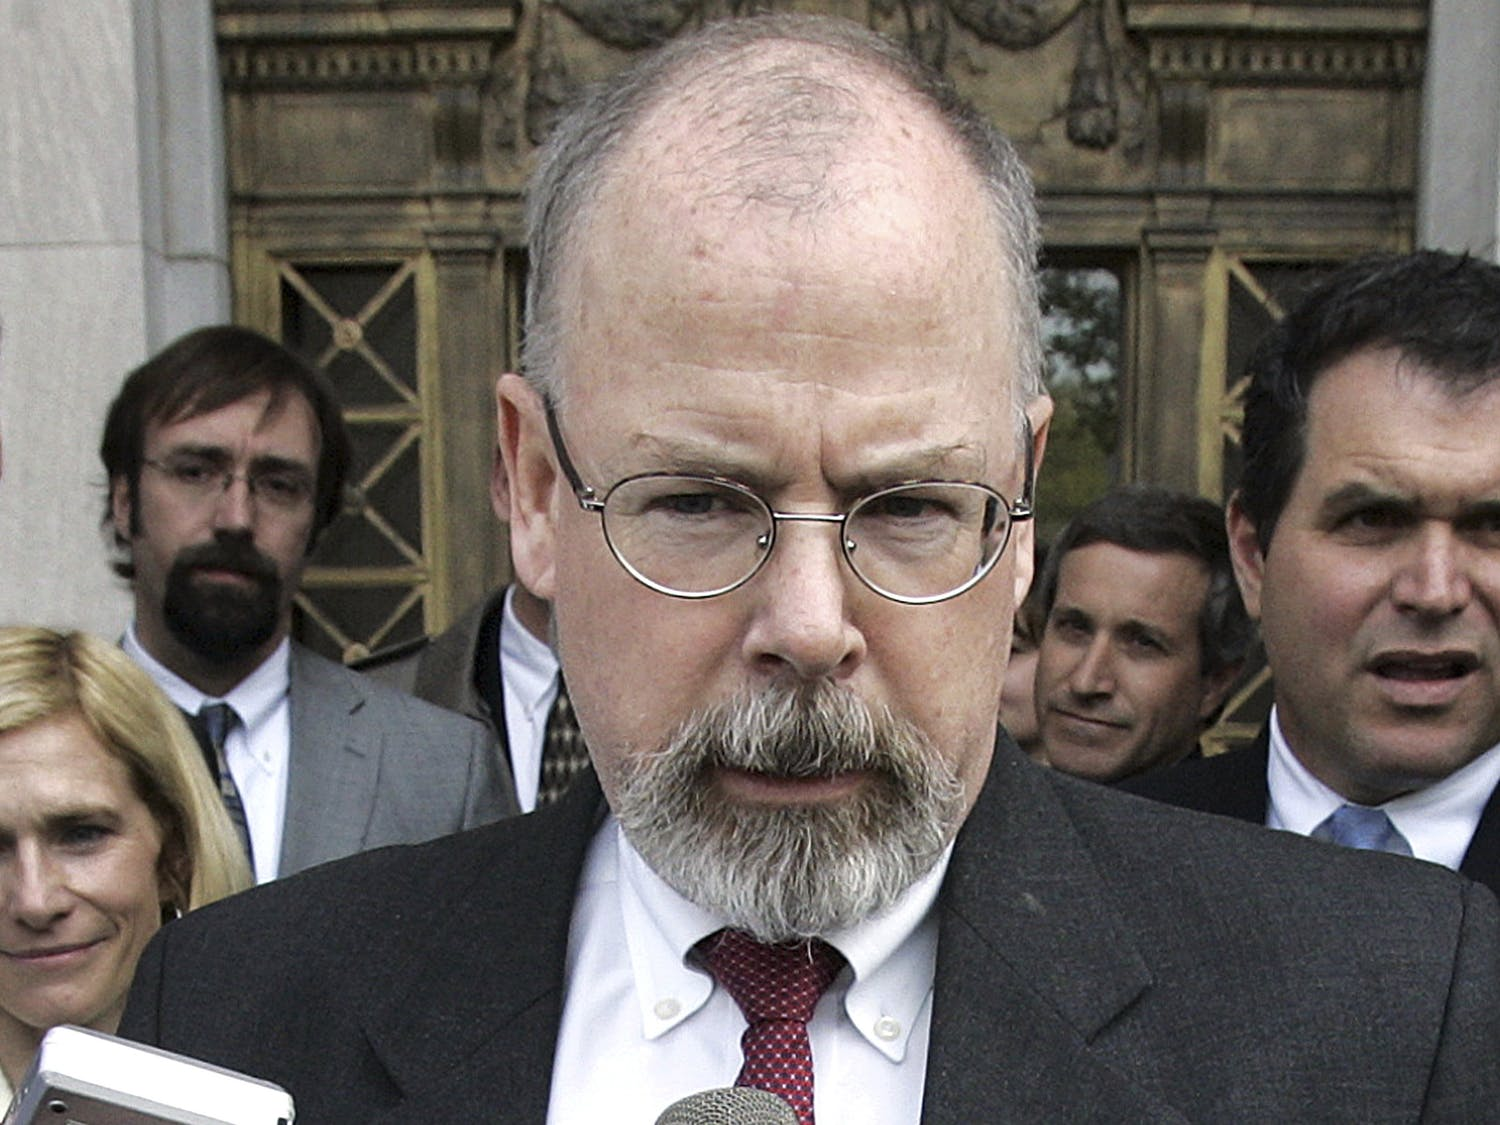 FILE - In this April 25, 2006, file photo, John Durham speaks to reporters on the steps of U.S. District Court in New Haven, Conn. Durham, Connecticut's U.S. attorney, is leading the investigation into the origins of the Russia probe. He is no stranger to high-profile, highly scrutinized investigations. (AP Photo/Bob Child, File)